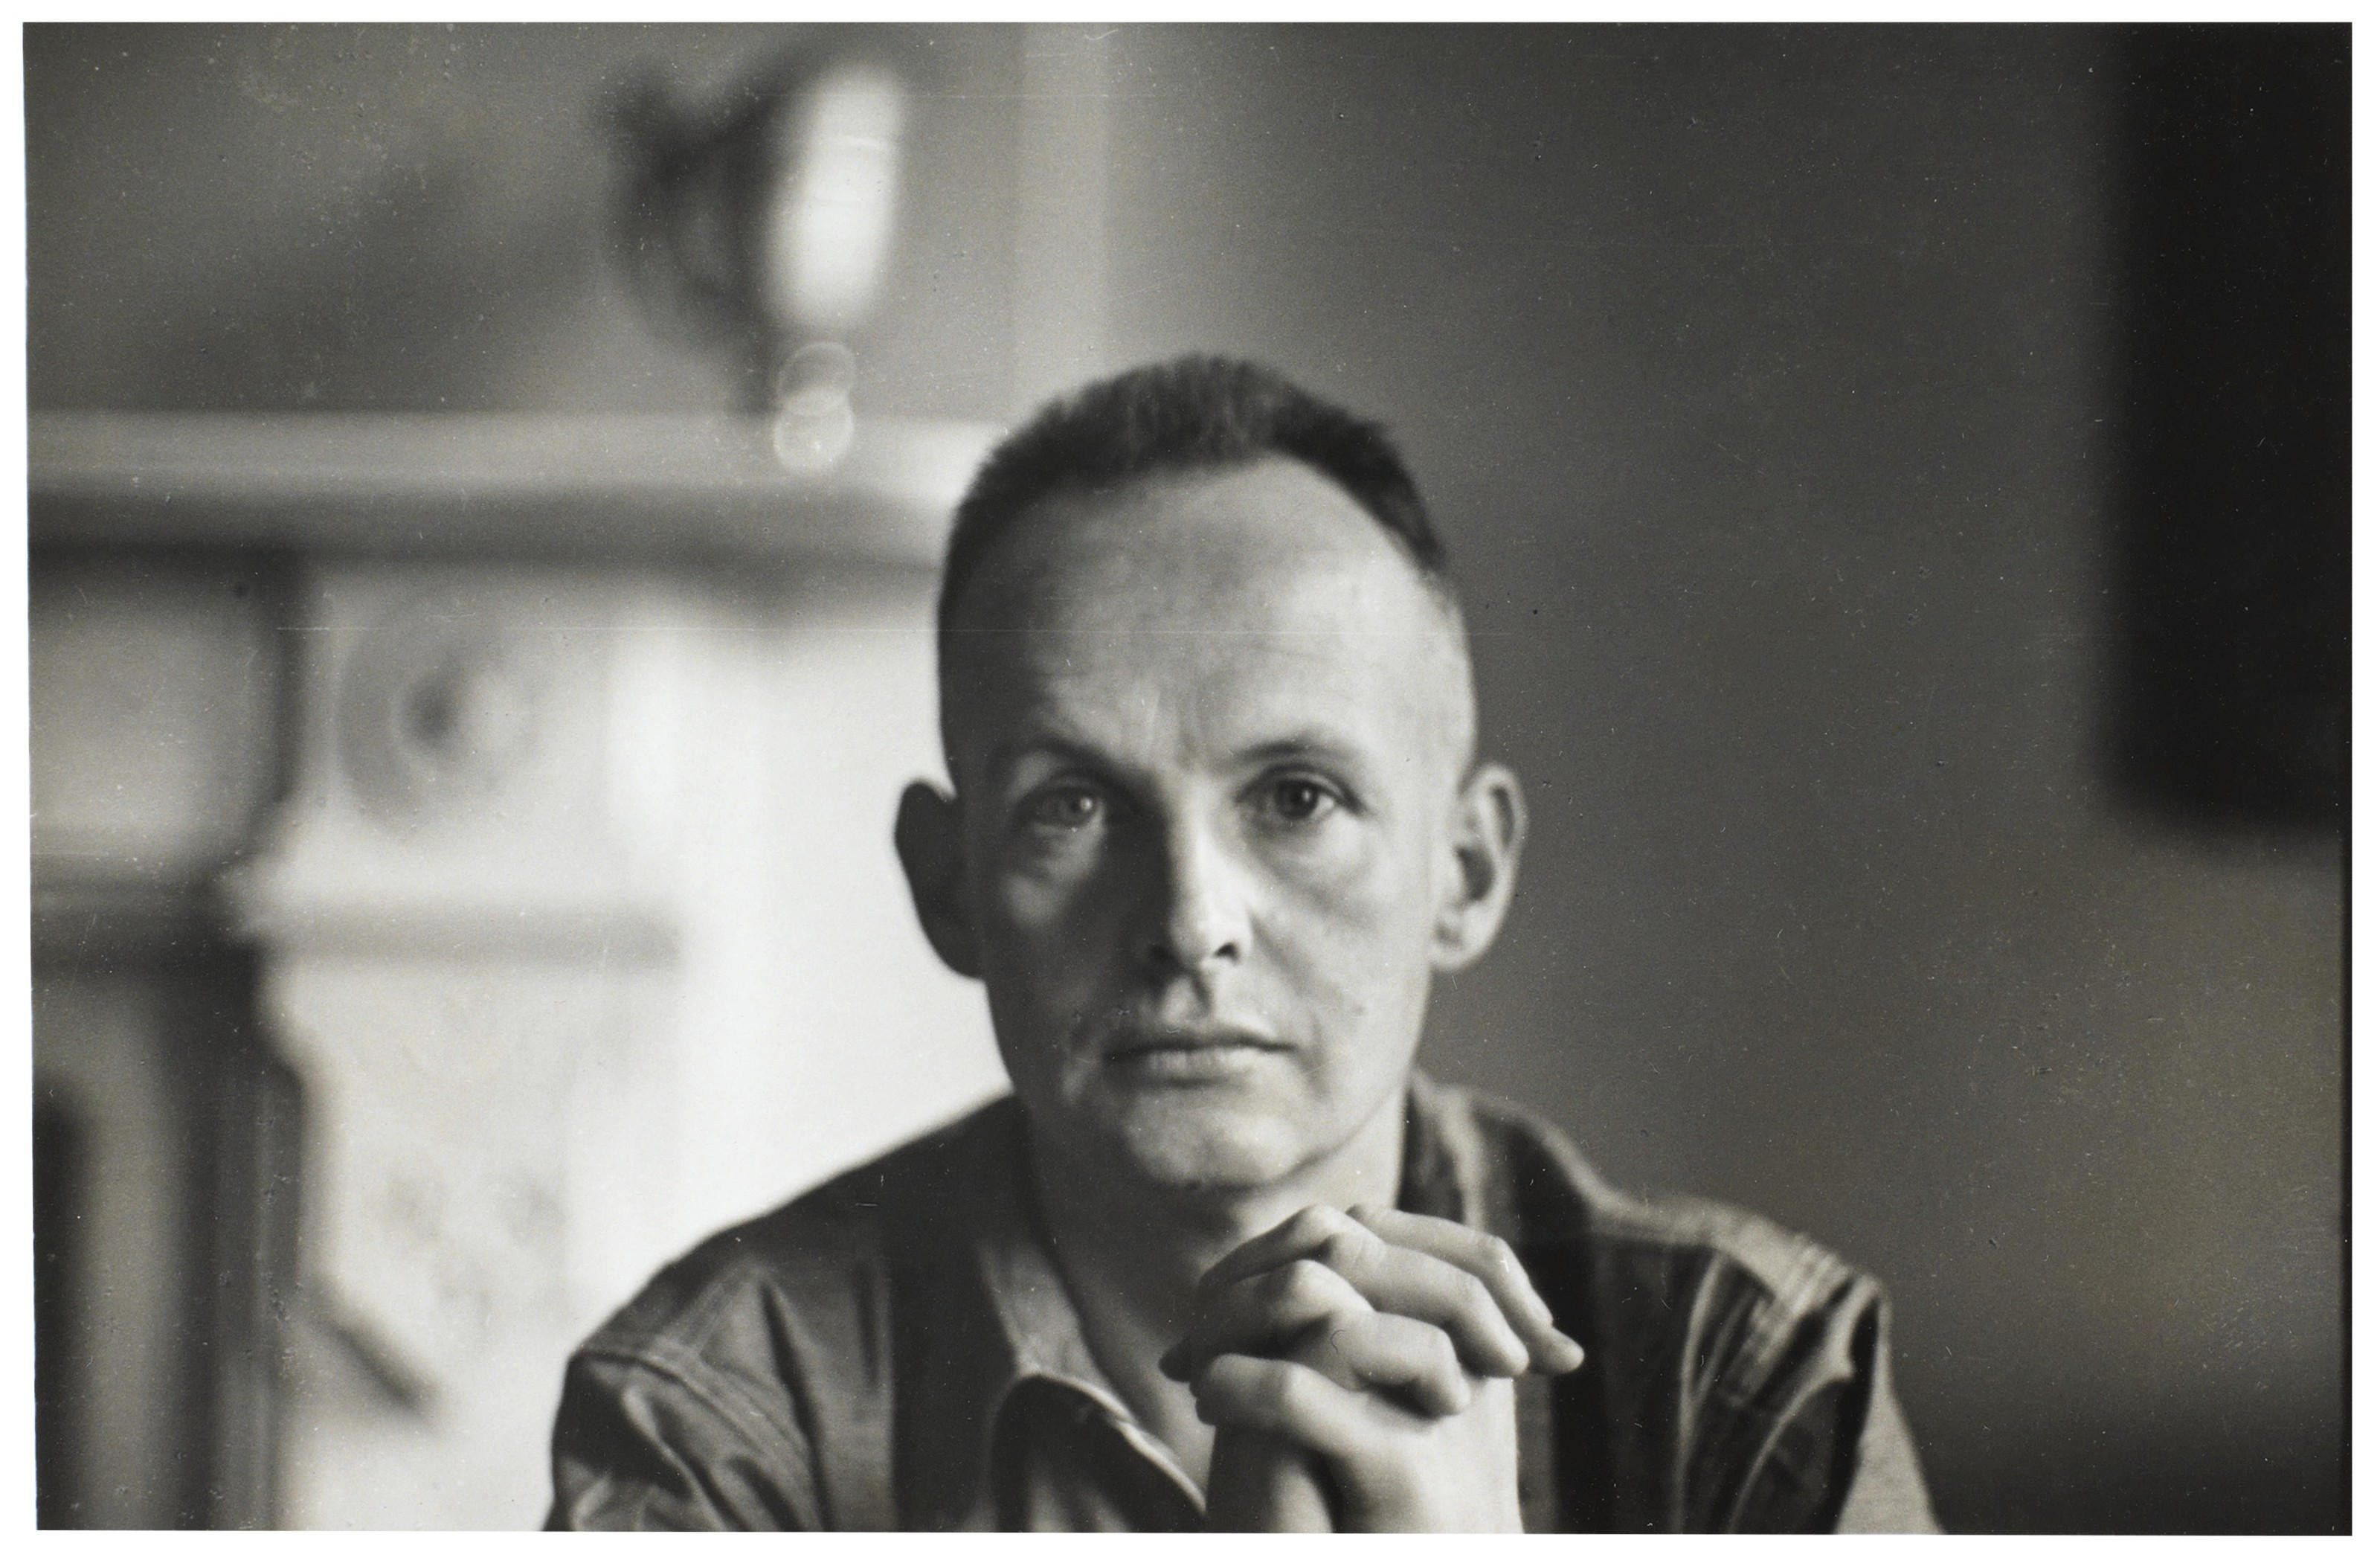 BEAUMONT NEWHALL (1908–1993)